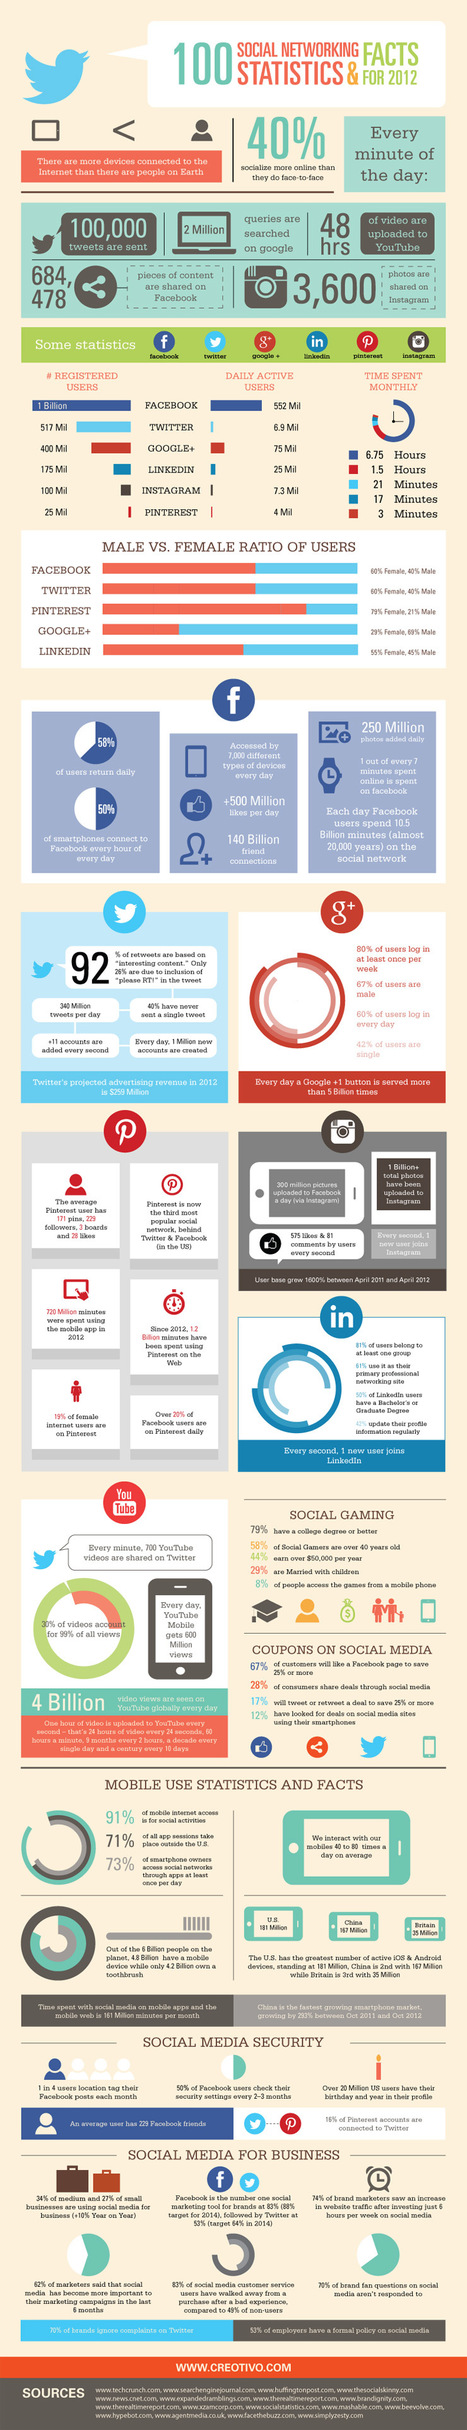 [Réseaux Sociaux] 100 Amazing Social Media Statistics, Facts And Figures 2012 – infographic /@BerriePelser | Communication - Marketing - Web_Mode Pause | Scoop.it